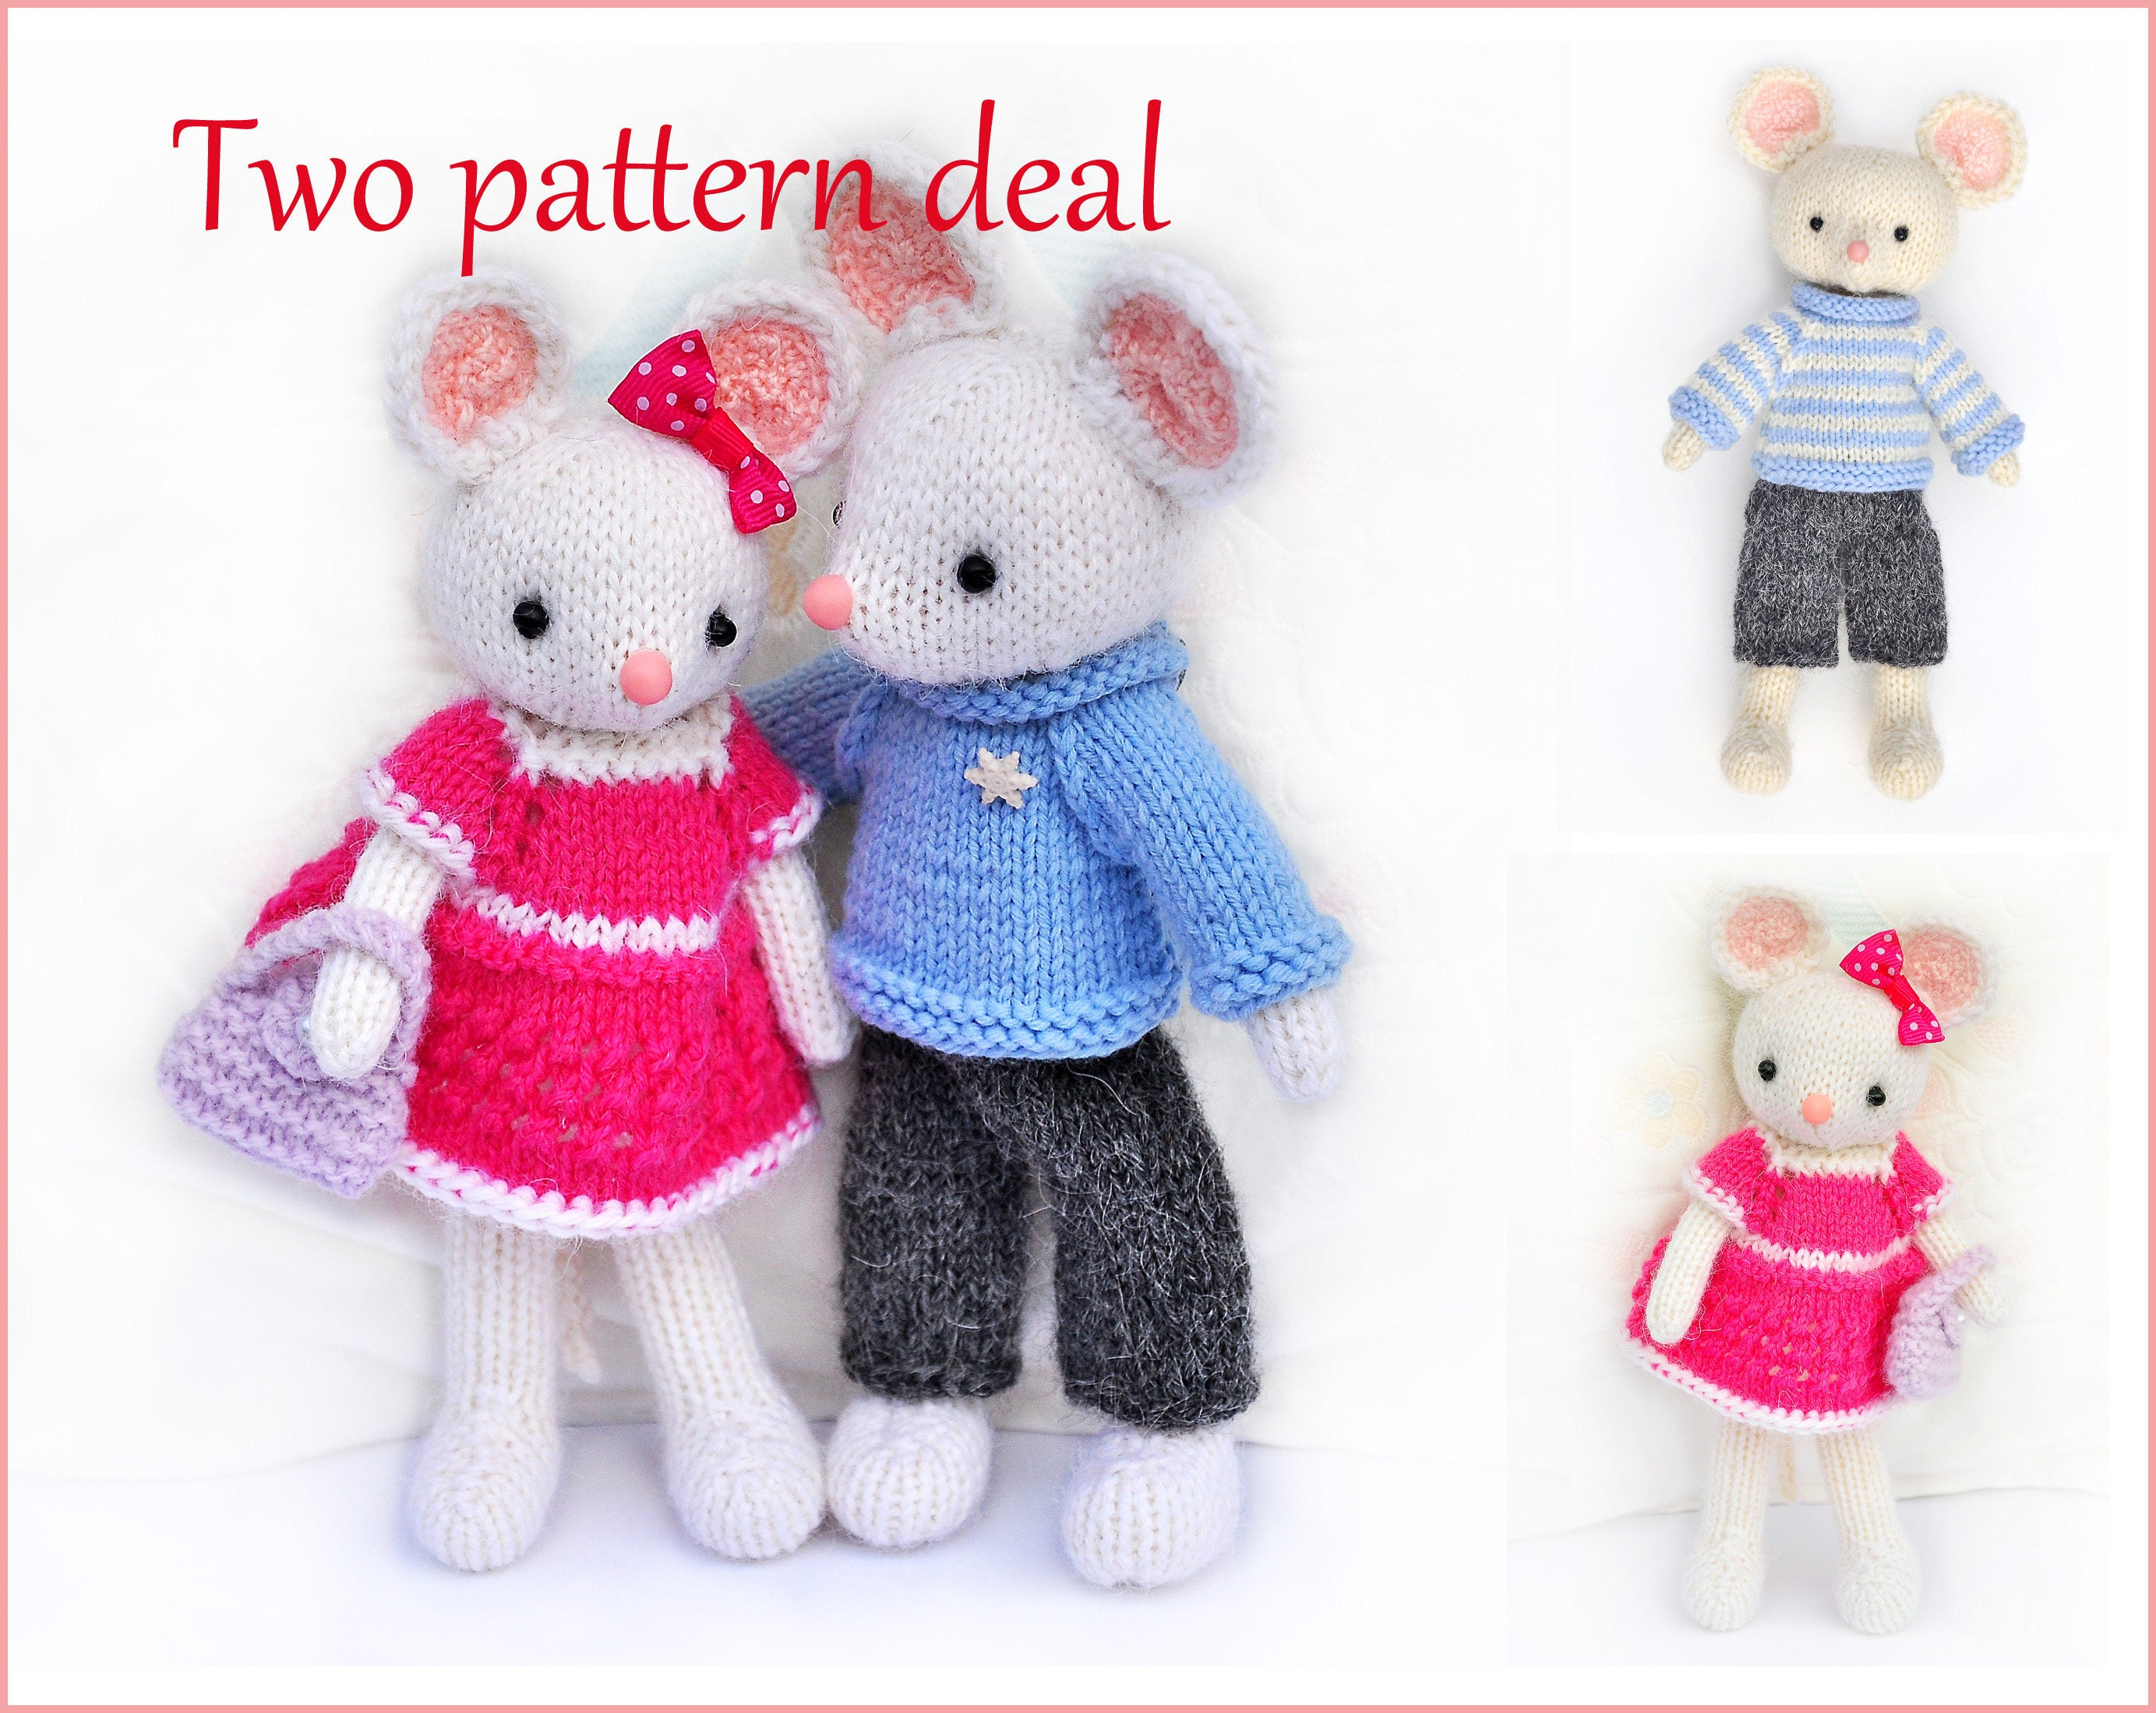 Knitting Patterns For Baby Toys Toy Knitting Patterns Two Pattern Deal Lilly And Peter Knitted Mice Amigurumi Mouse Knit Patterns Stuffed Toy Diy Toy Pattern Ba Toy Pdf